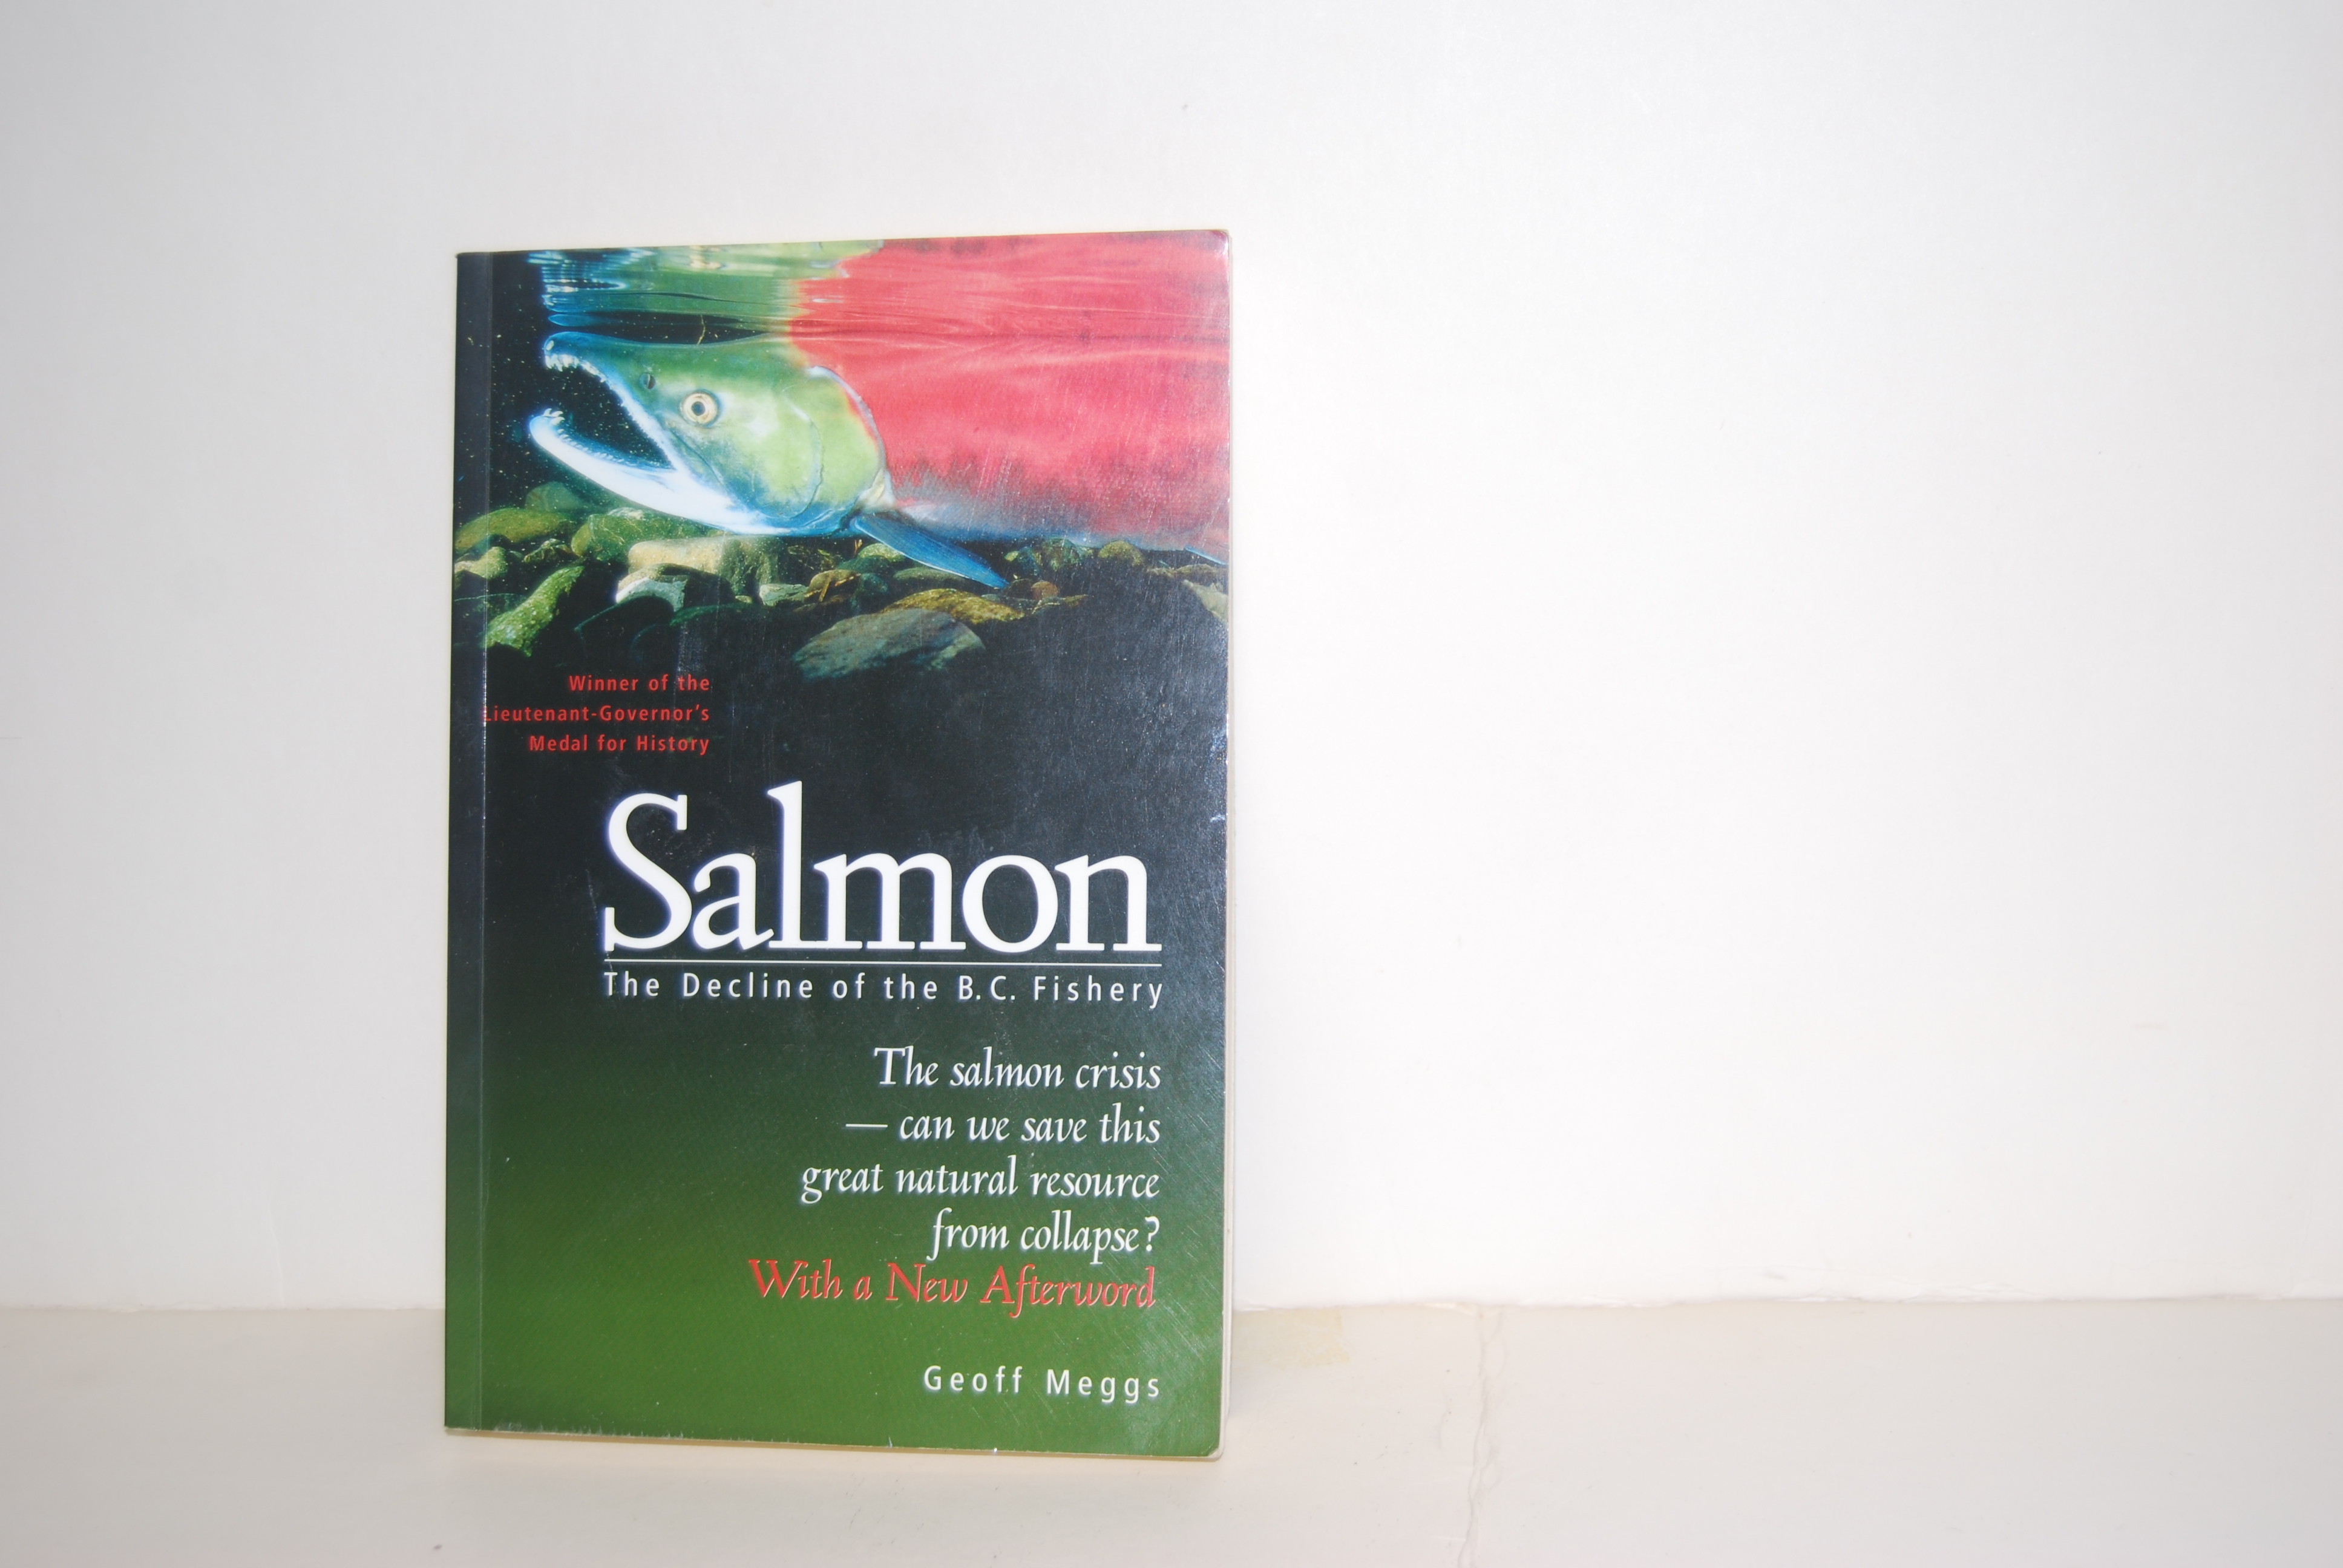 Image for  SALMON. The Decline of the British Columbia Fishery.